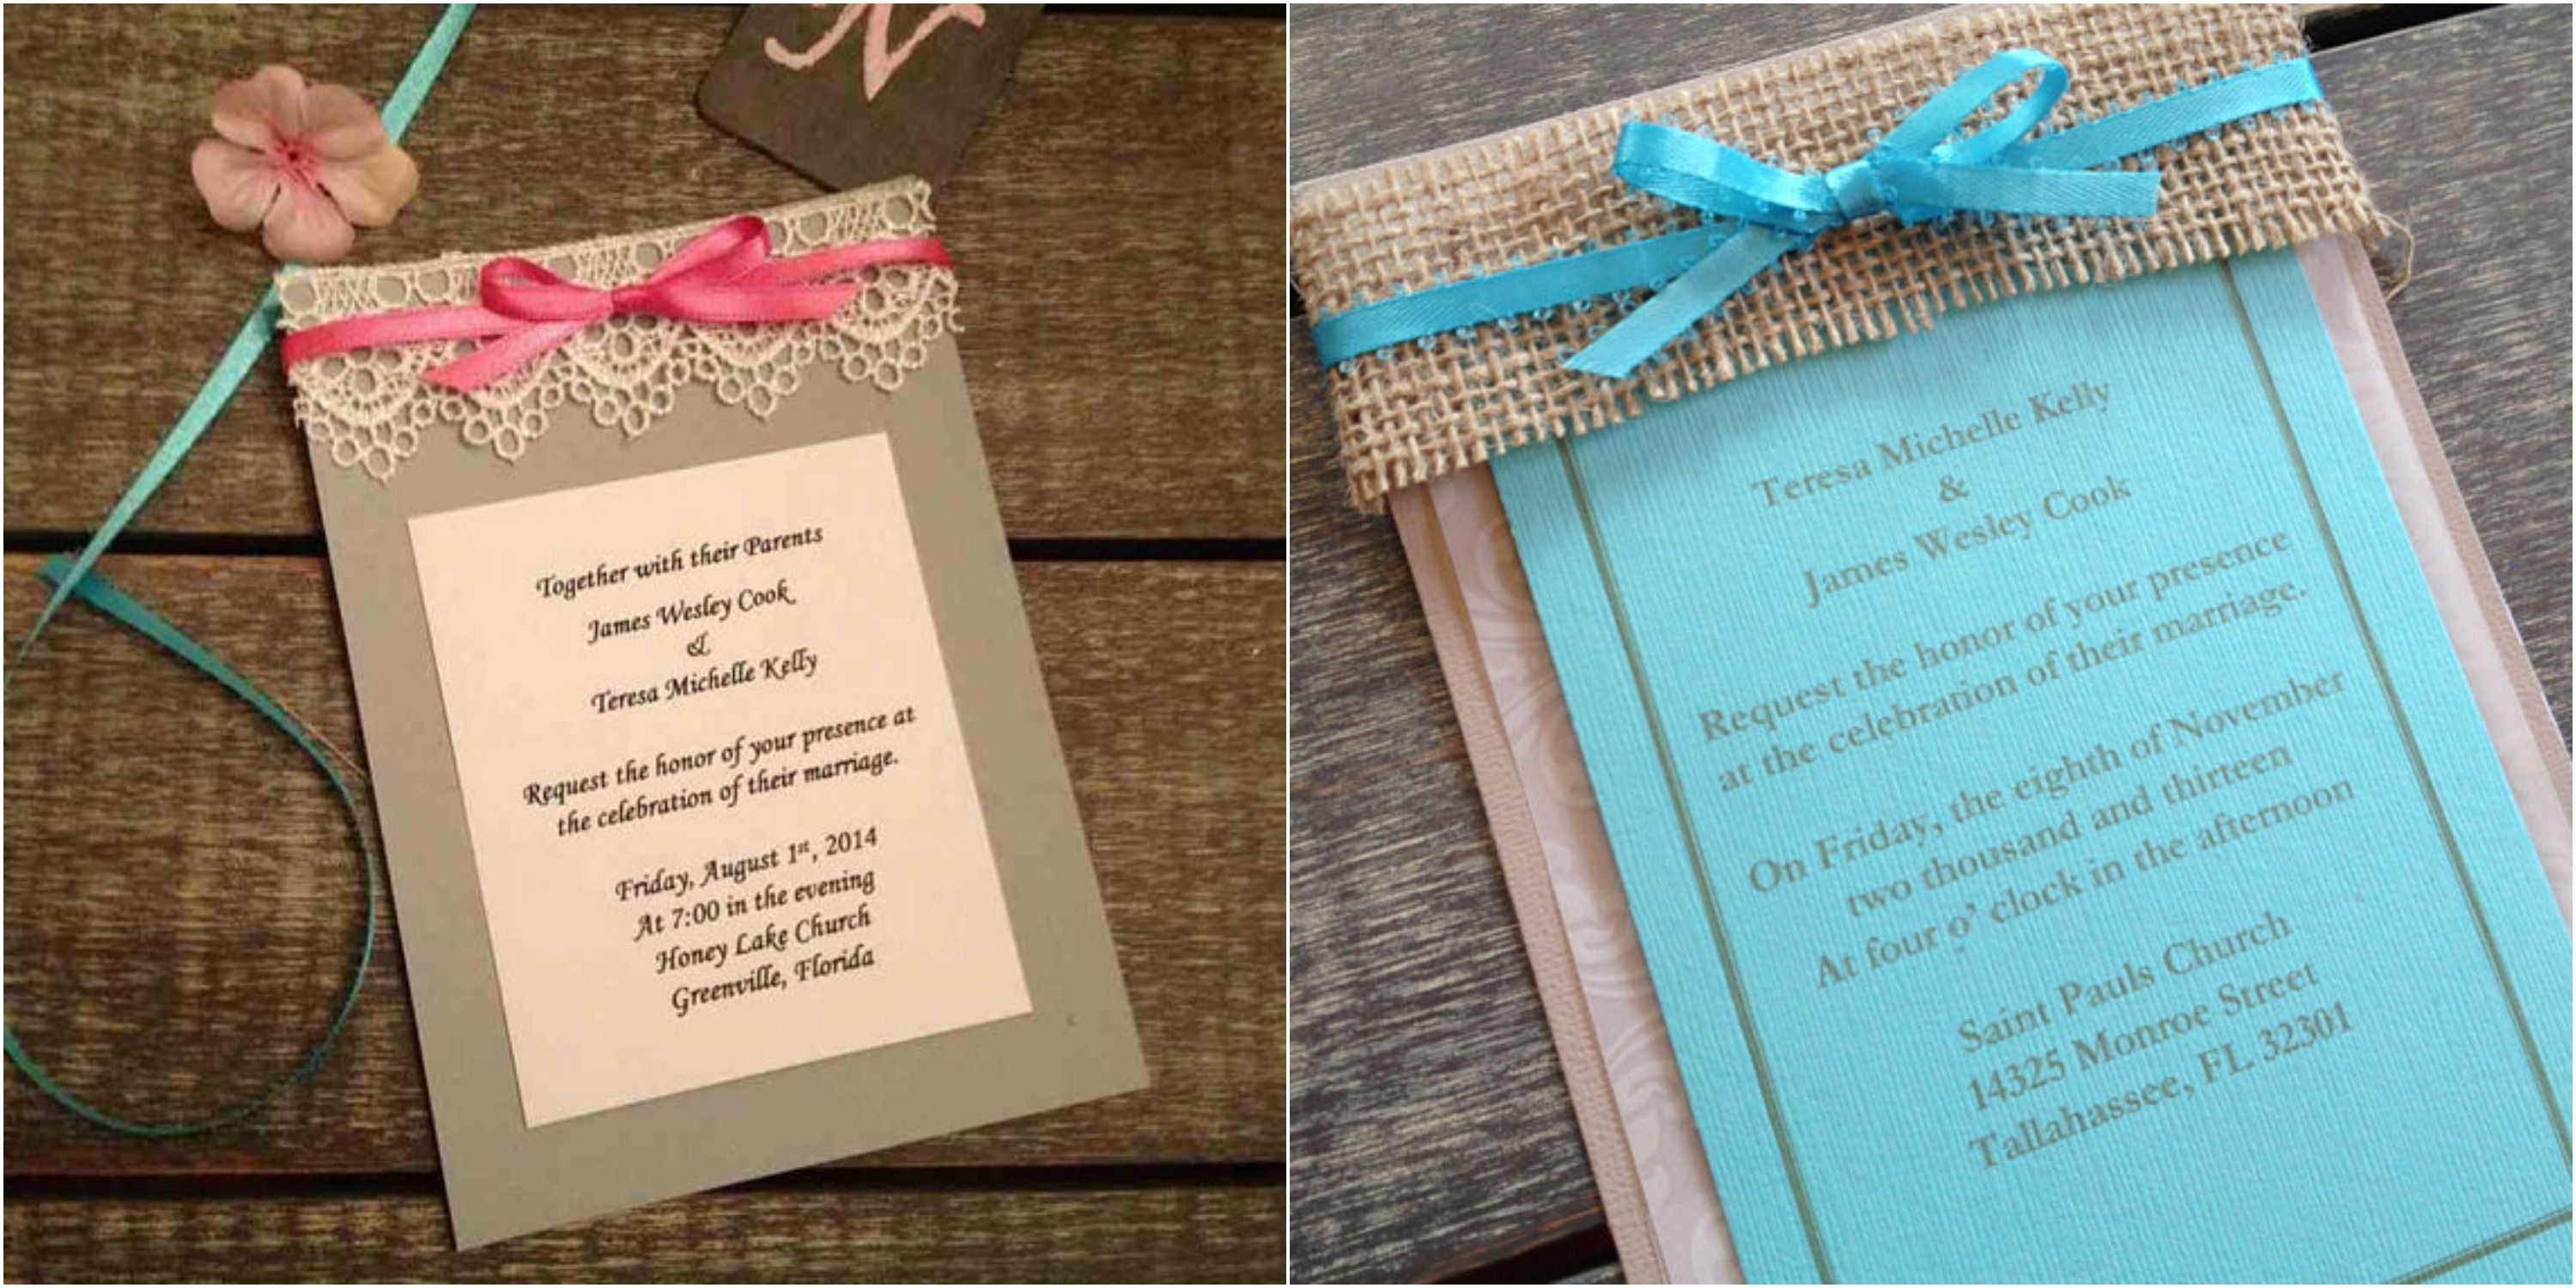 Rustic Wedding Invitations - Rustic Country Wedding Invites and Ideas